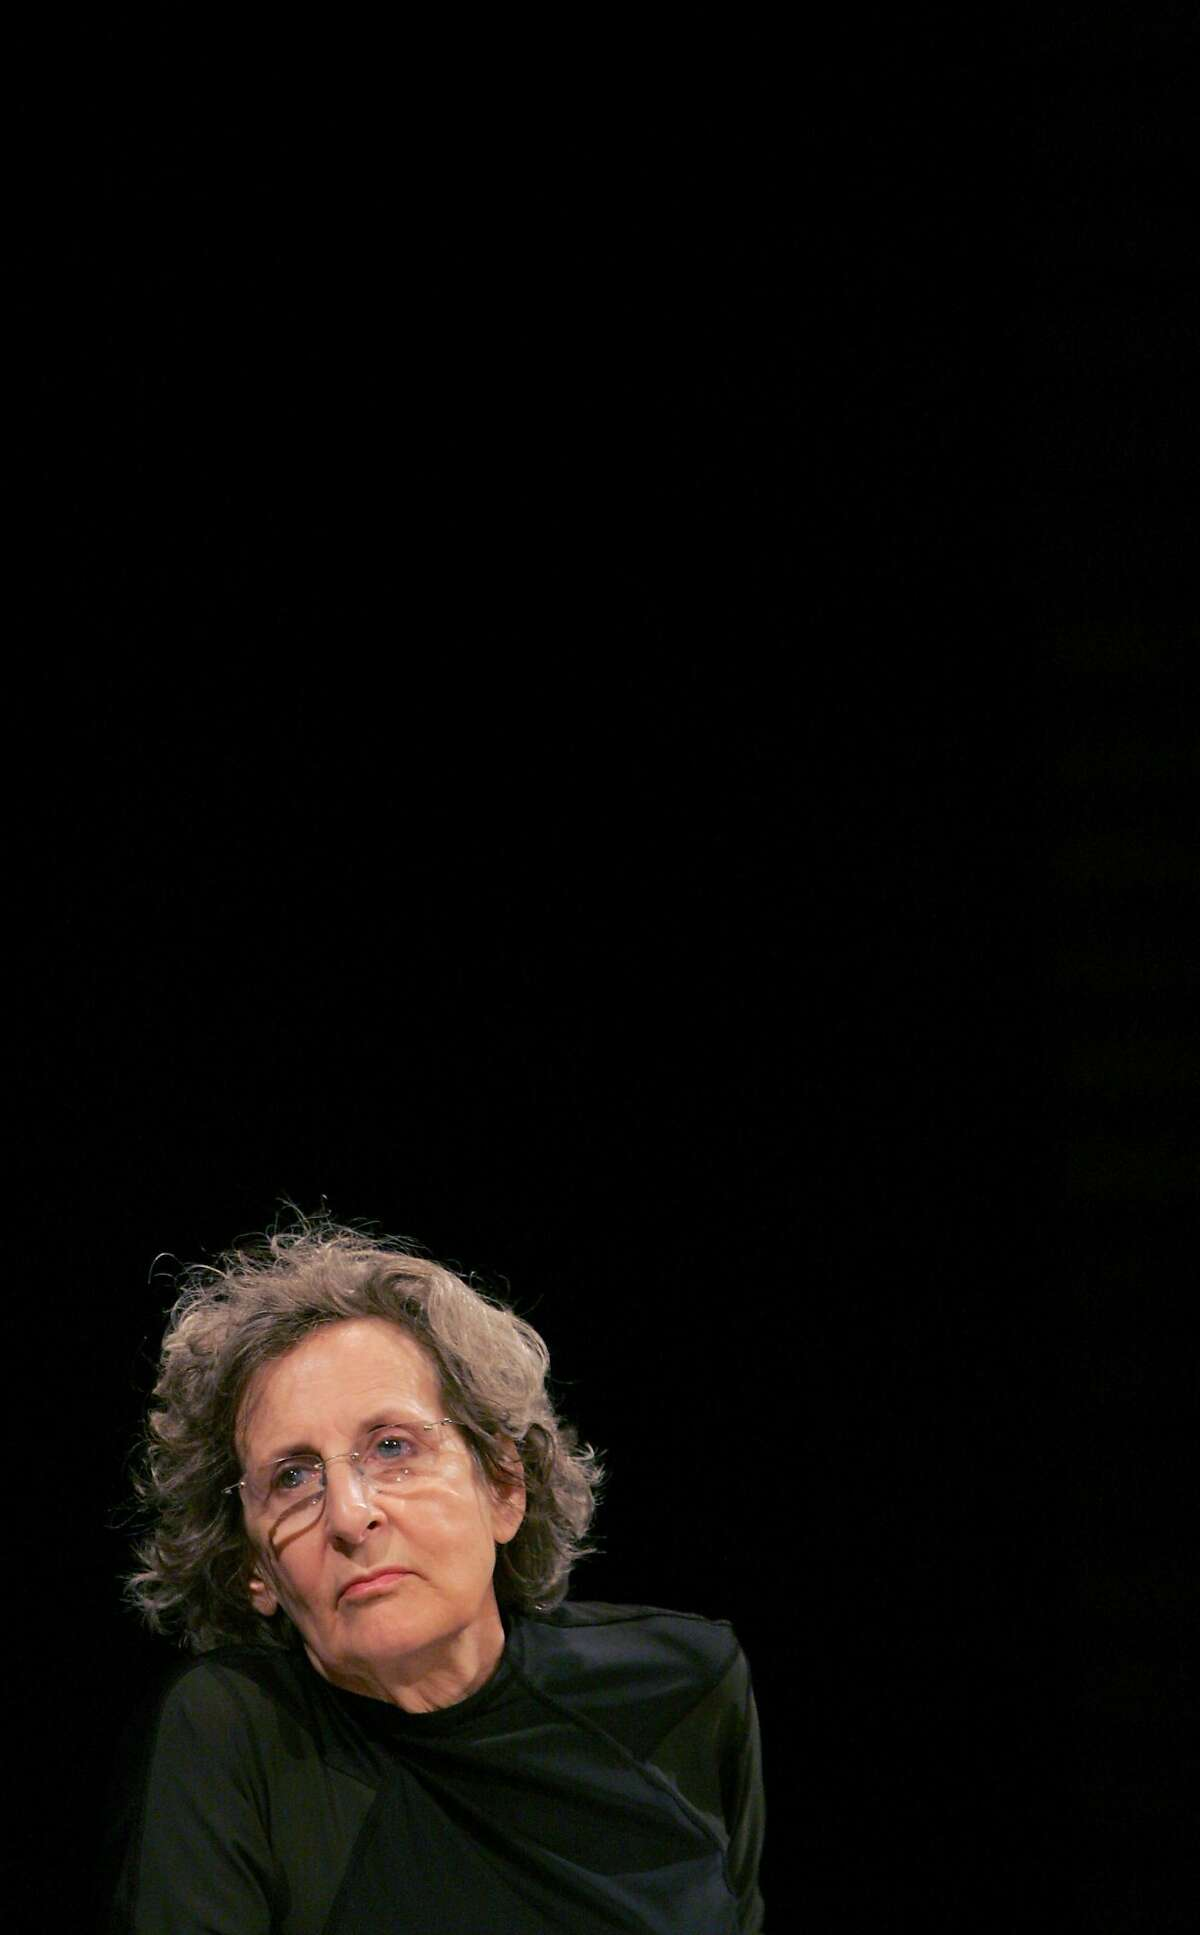 (FILES) This file photo taken on January 05, 2006 shows US post modern dance choregrapher Trisha Brown, at a press conference, in Paris. The Choregrapher died on March 18, 2017 it was announced on the Twitter account of her Dance company on March 20, 2017. / AFP PHOTO / JACQUES DEMARTHONJACQUES DEMARTHON/AFP/Getty Images